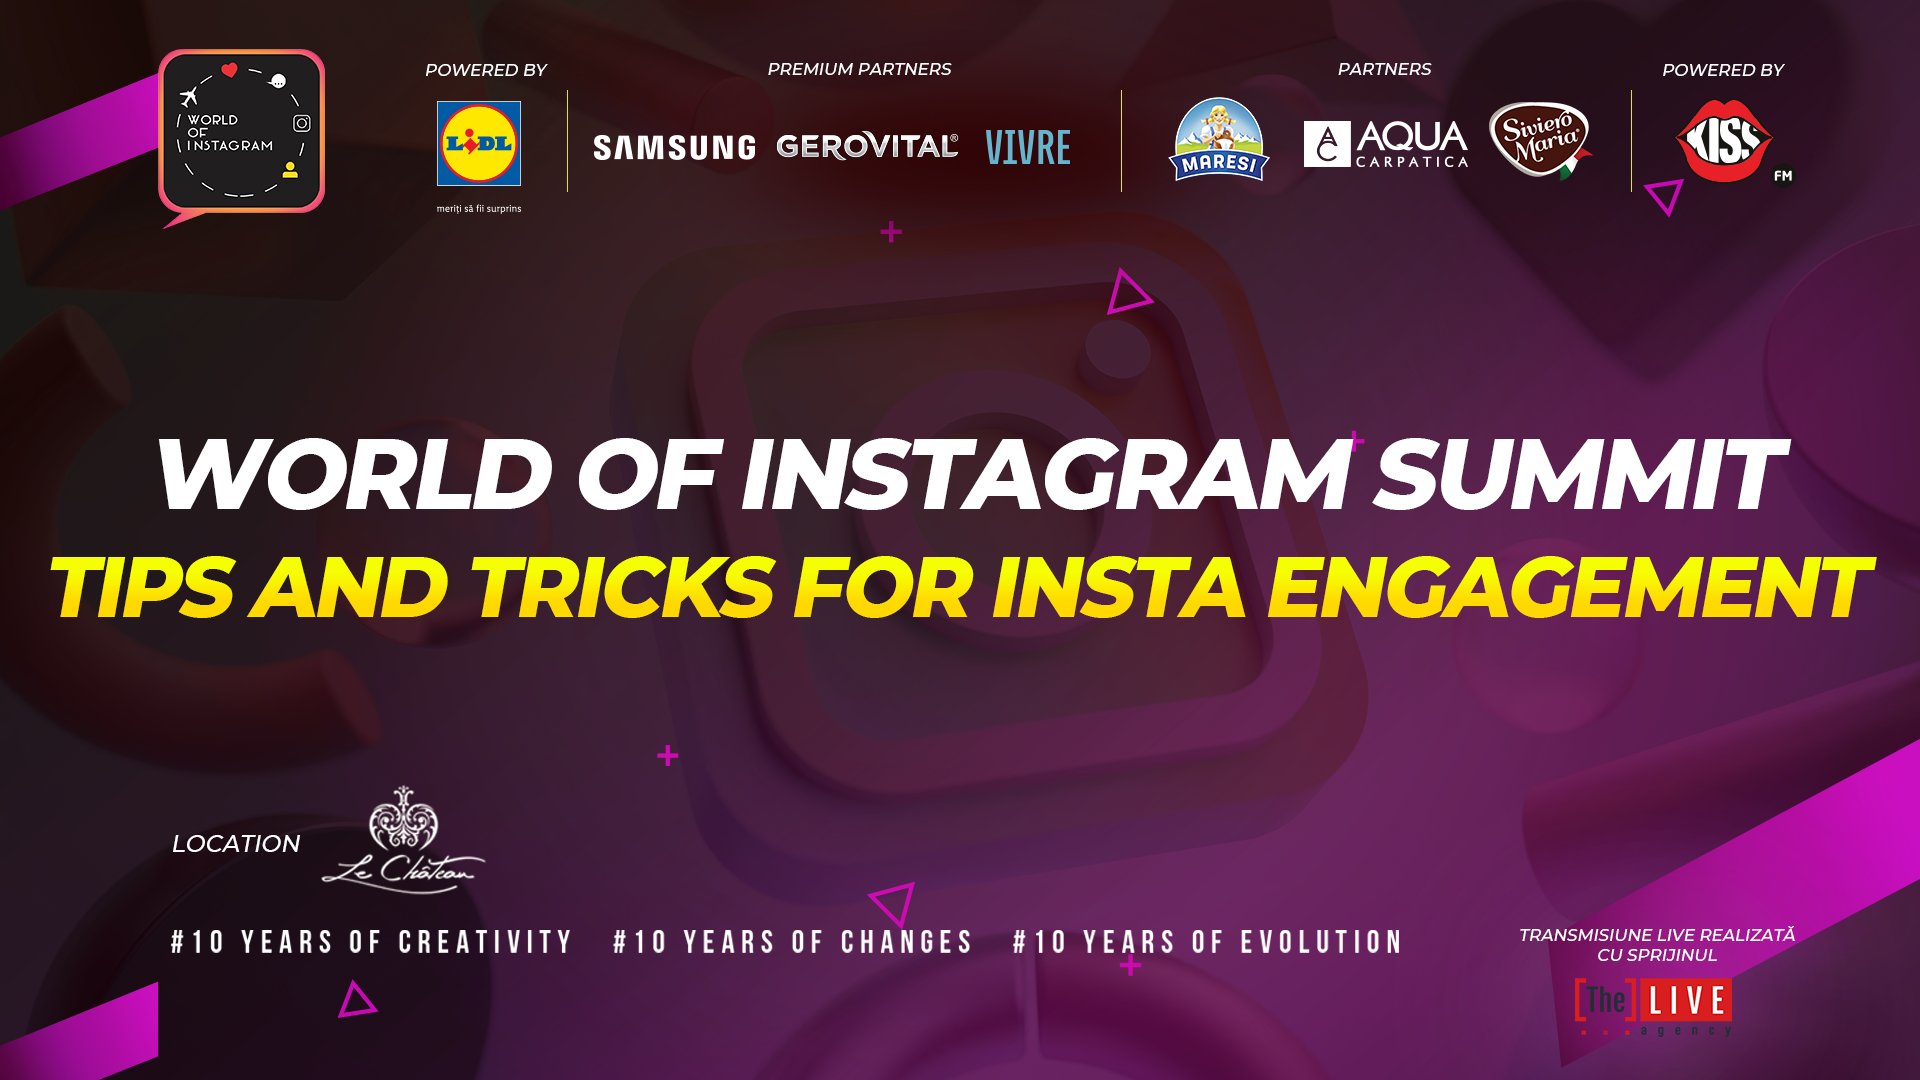 TIPS AND TRICKS FOR INSTA ENGAGEMENT